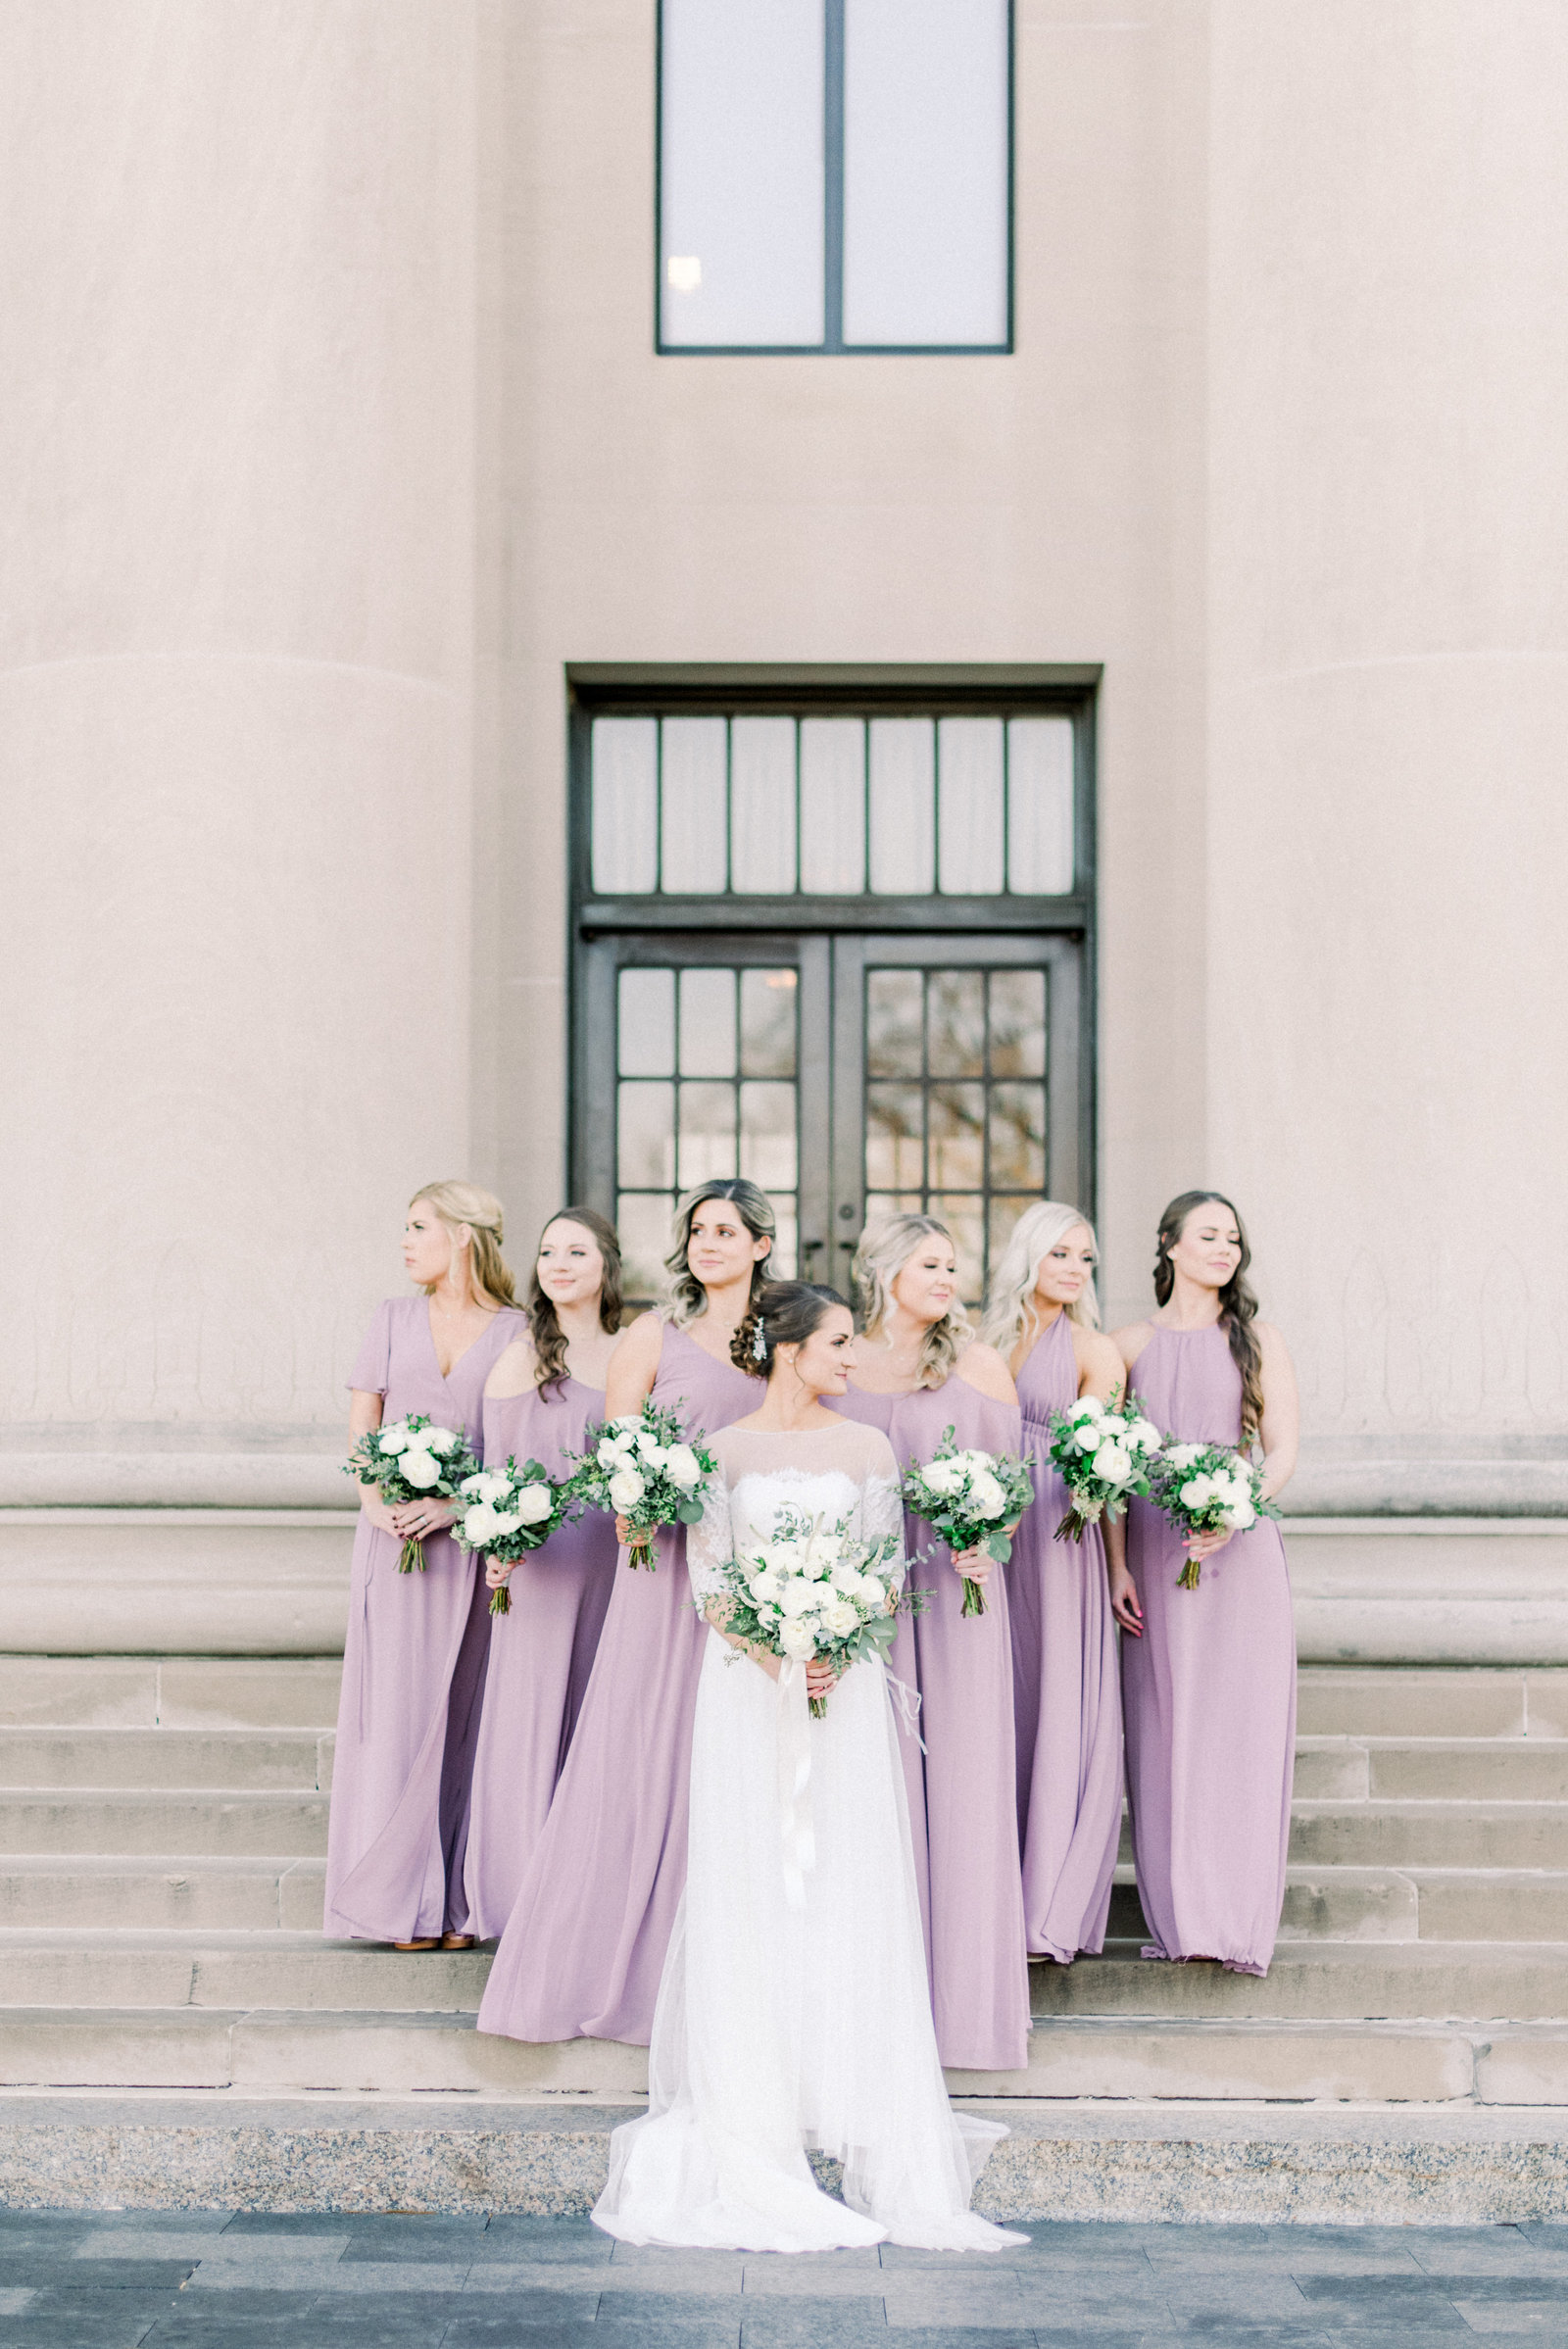 Drexel_Hall_Wedding_Kansas_City_Allie+Ryan-74